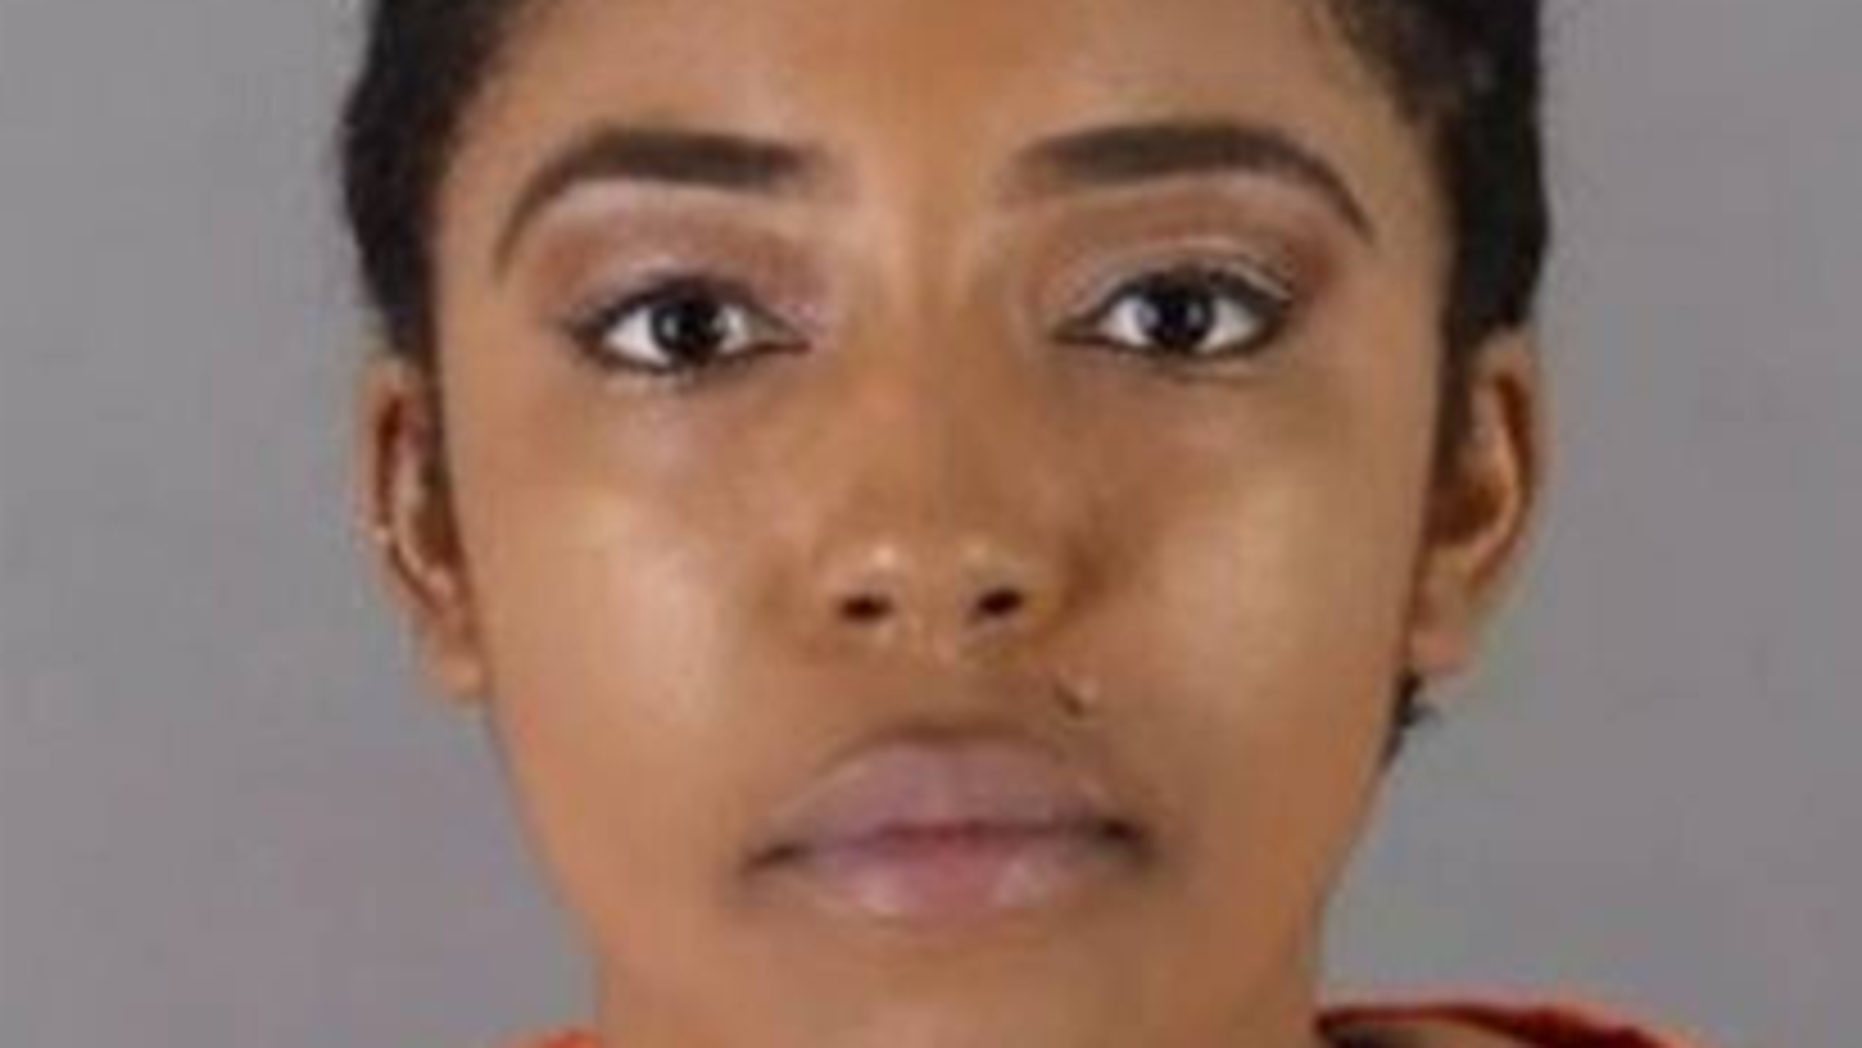 Akilah Hasan, 26, was arrested Sunday and charged with suspicion of burglary and robbery, authorities say.